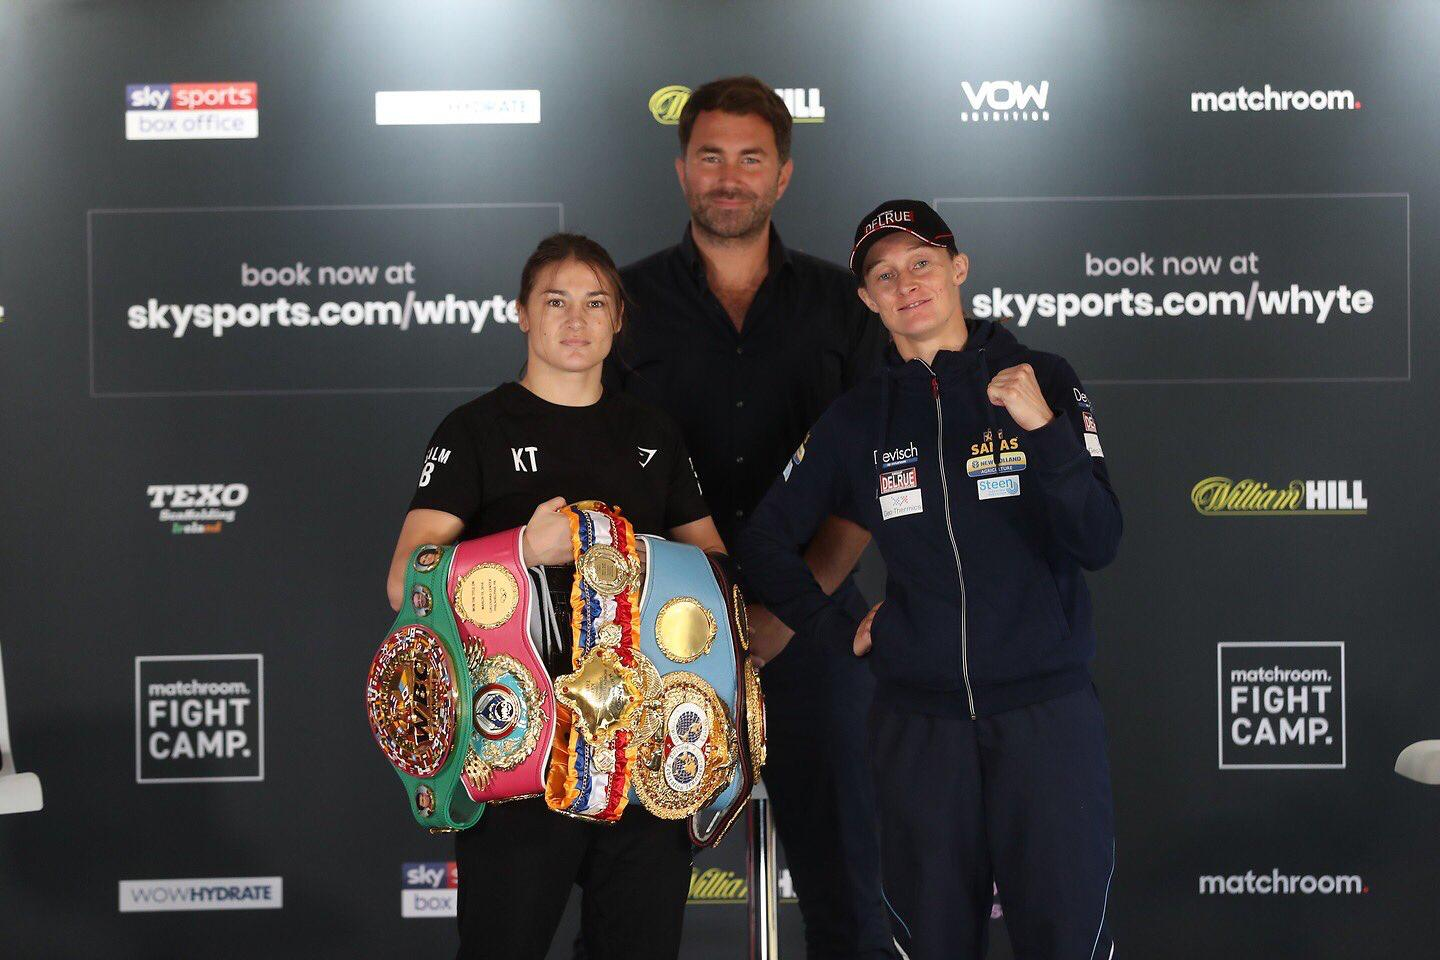 Taylor and Persoon met face to face at a press conference